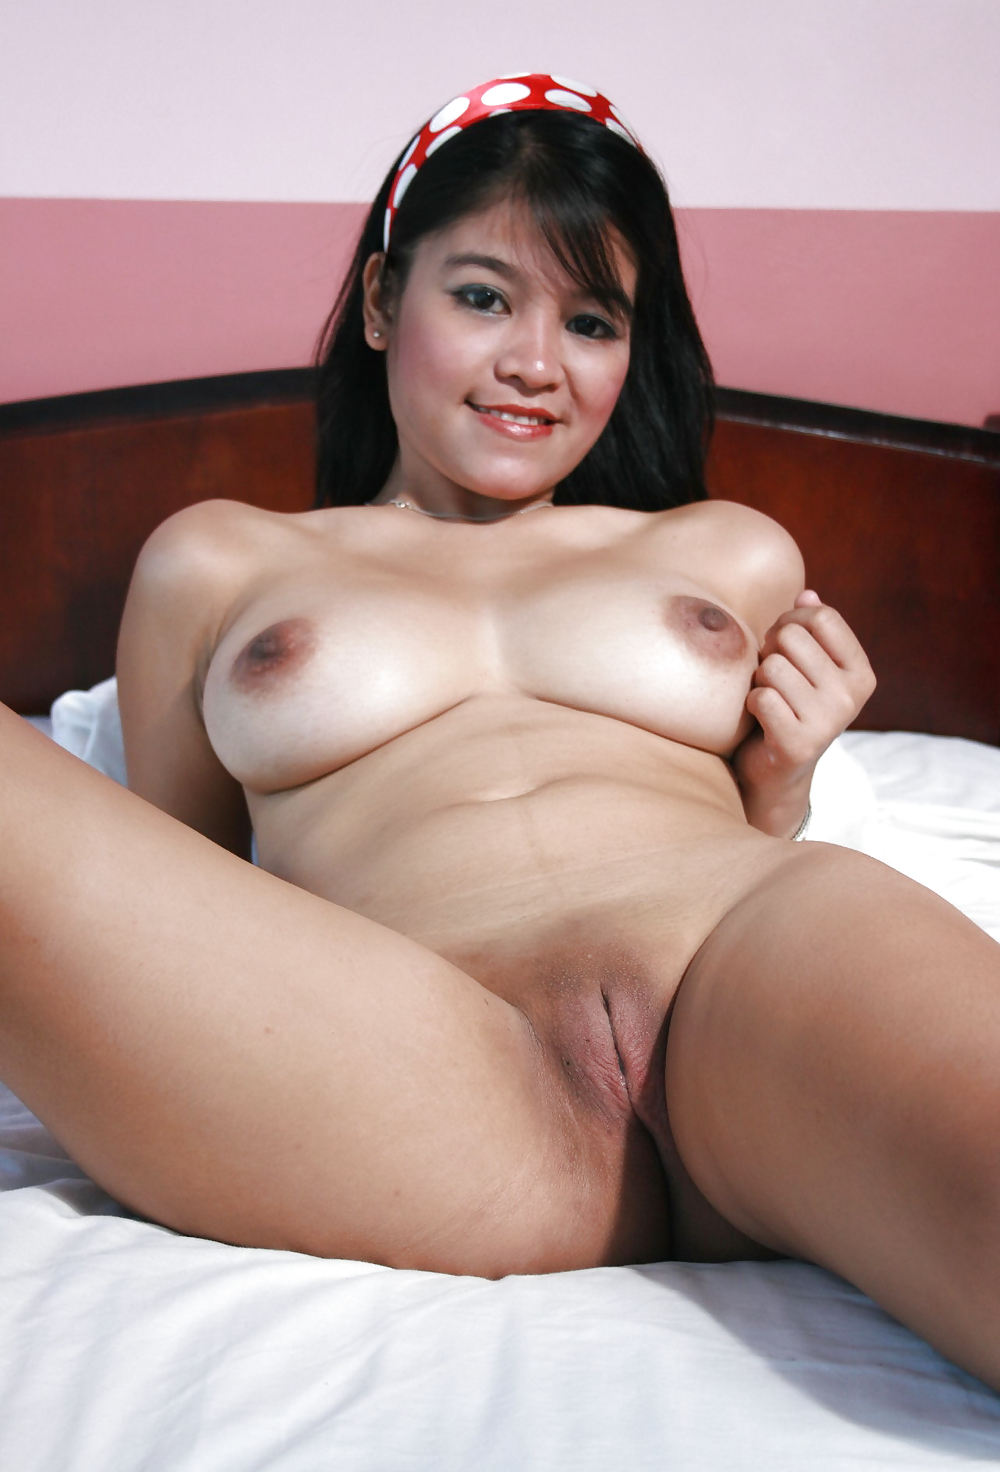 Pussy tits girl indonesia, older pussy bang